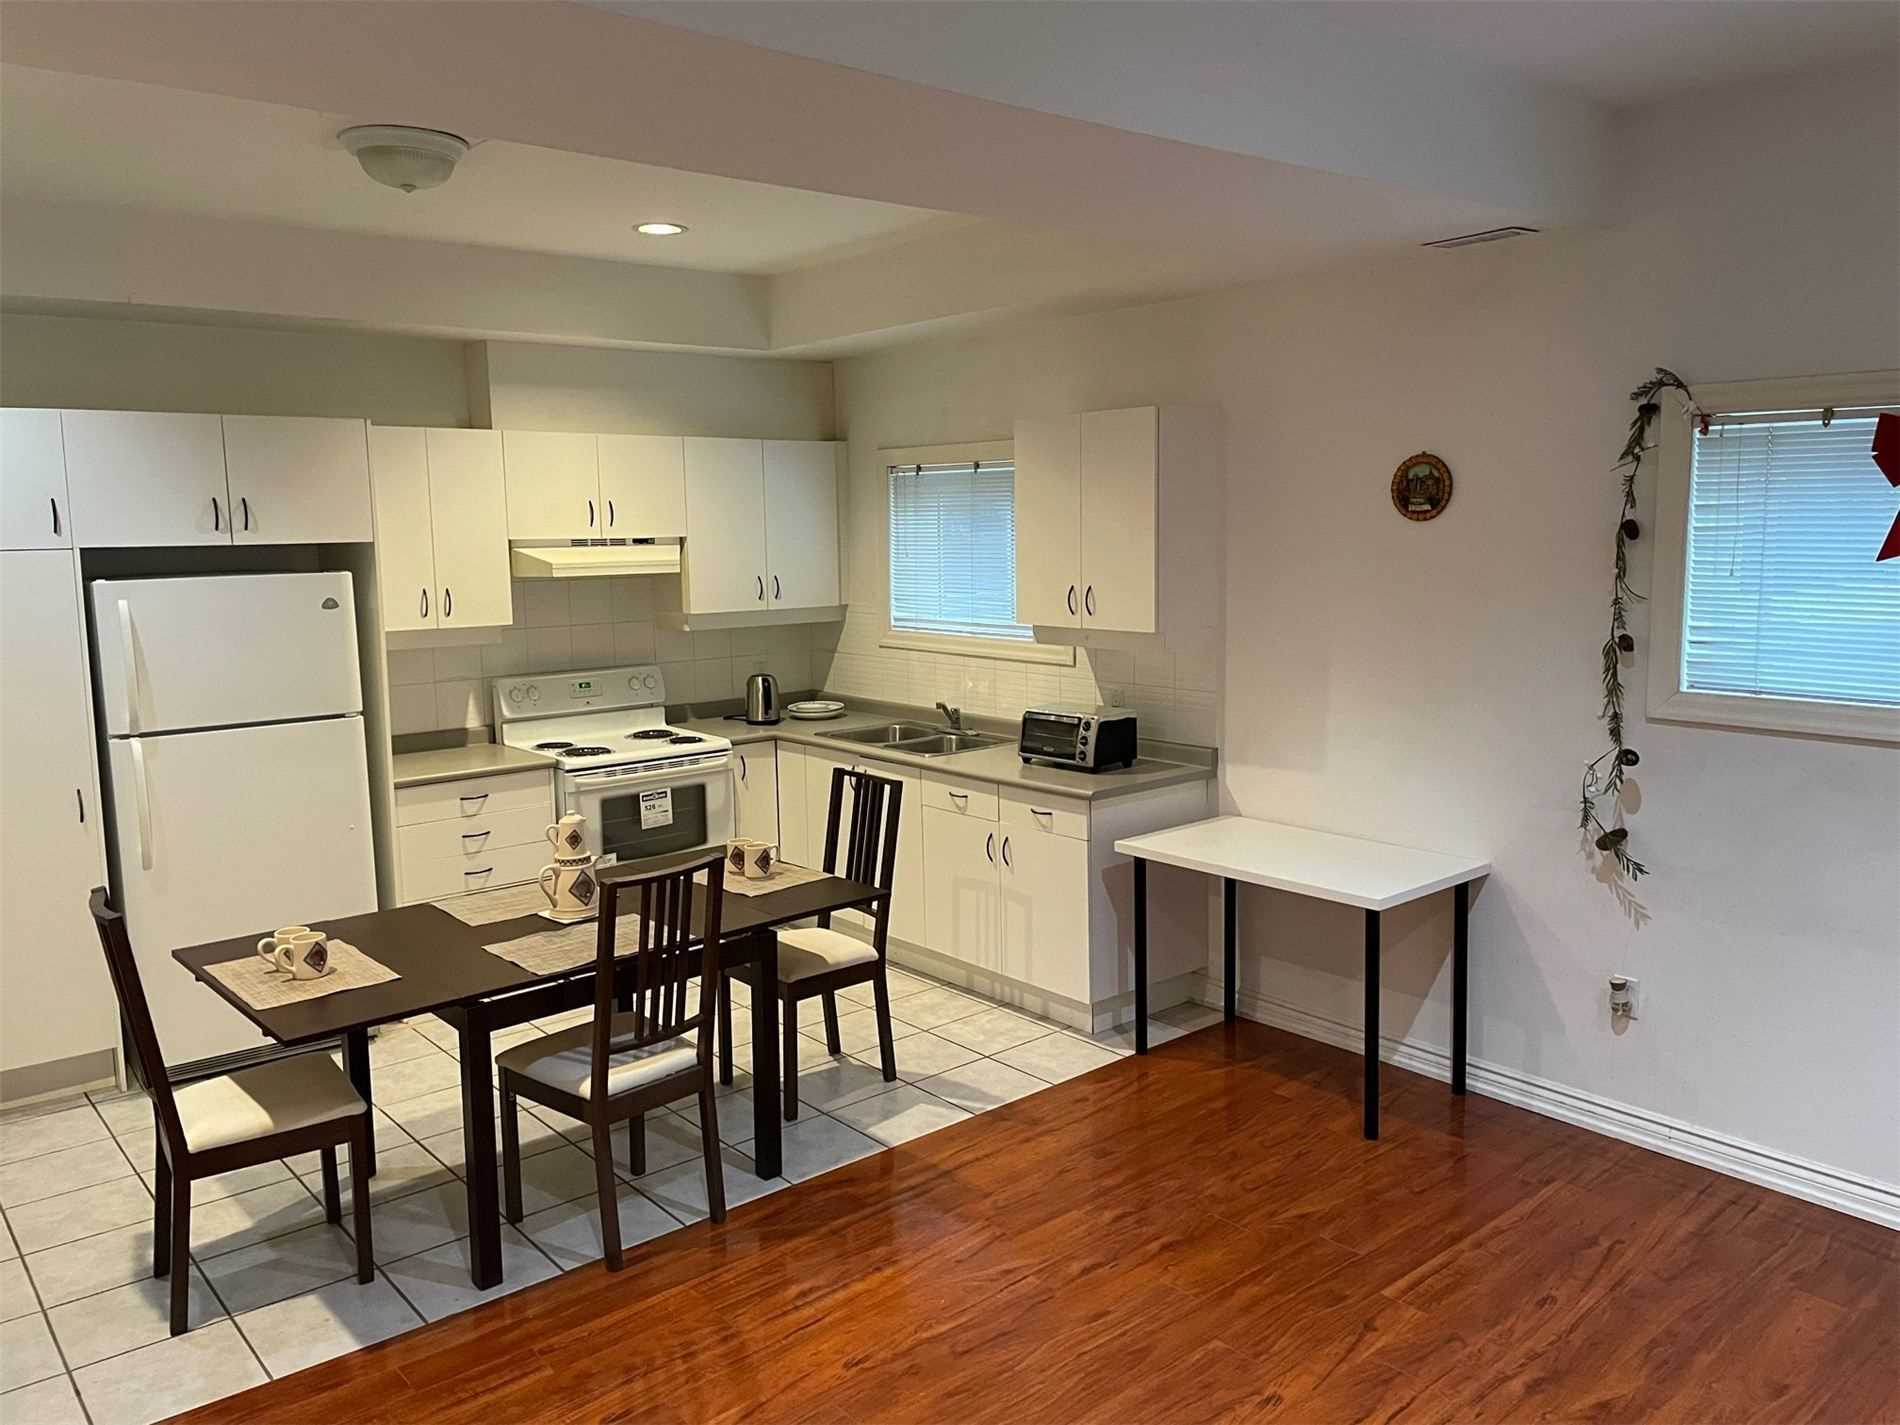 Image 5 of 10 showing inside of 1 Bedroom Detached 2-Storey for Lease at 40 Madawaska Ave, Toronto M2M2P9